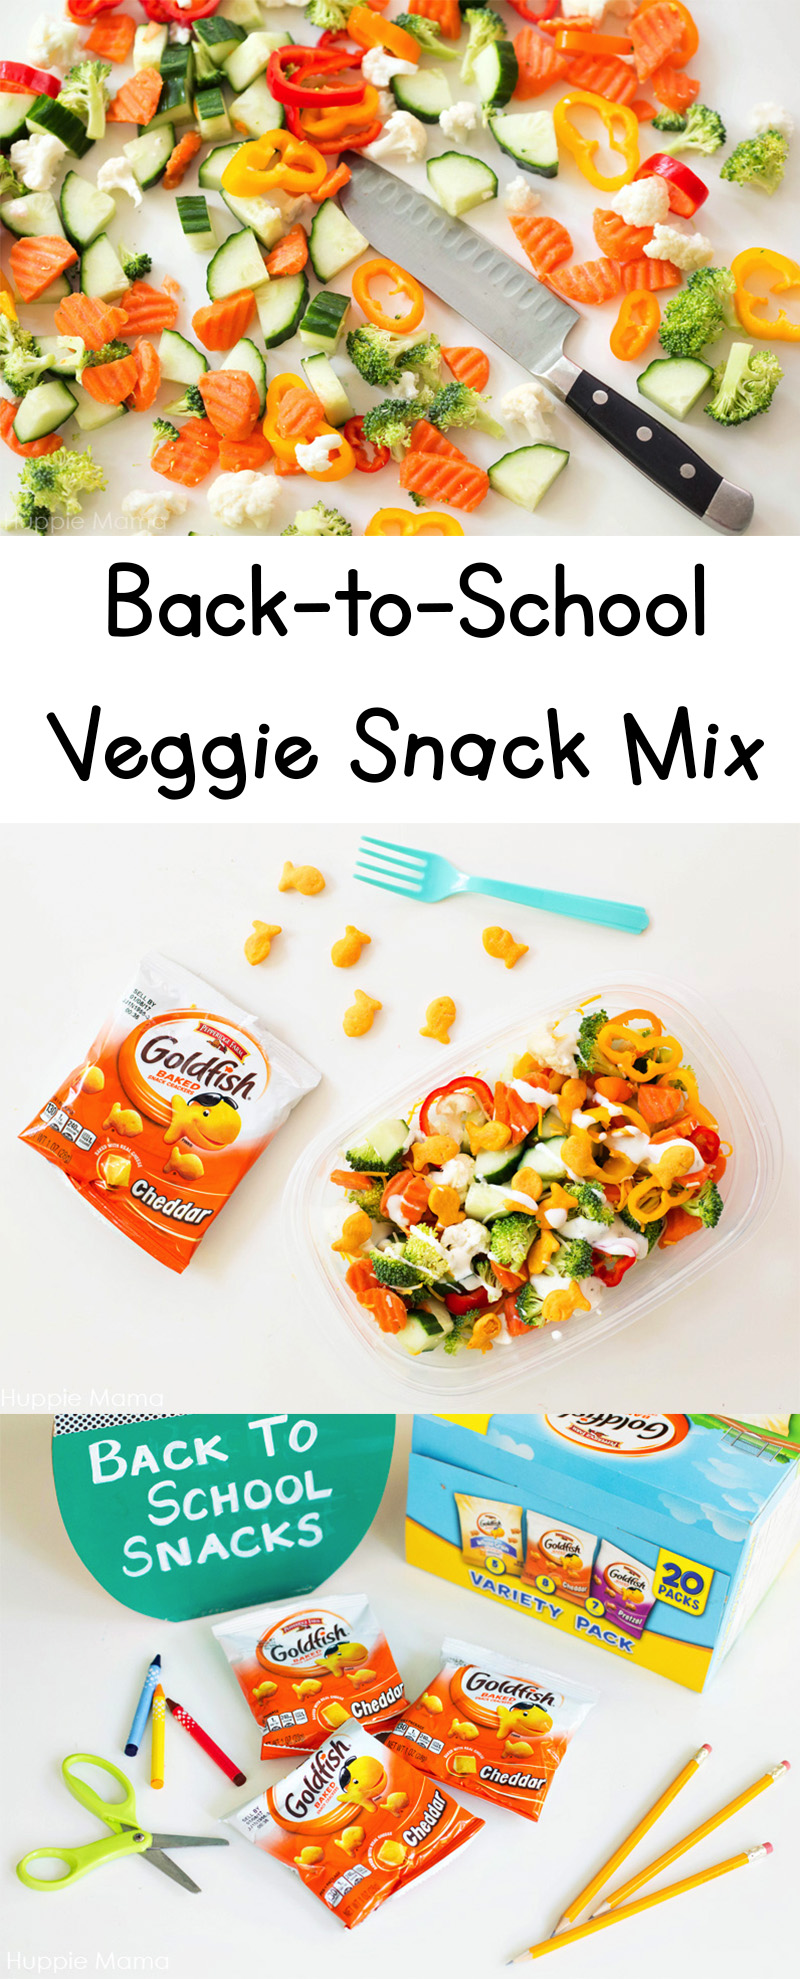 BTS Veggie Snack Mix